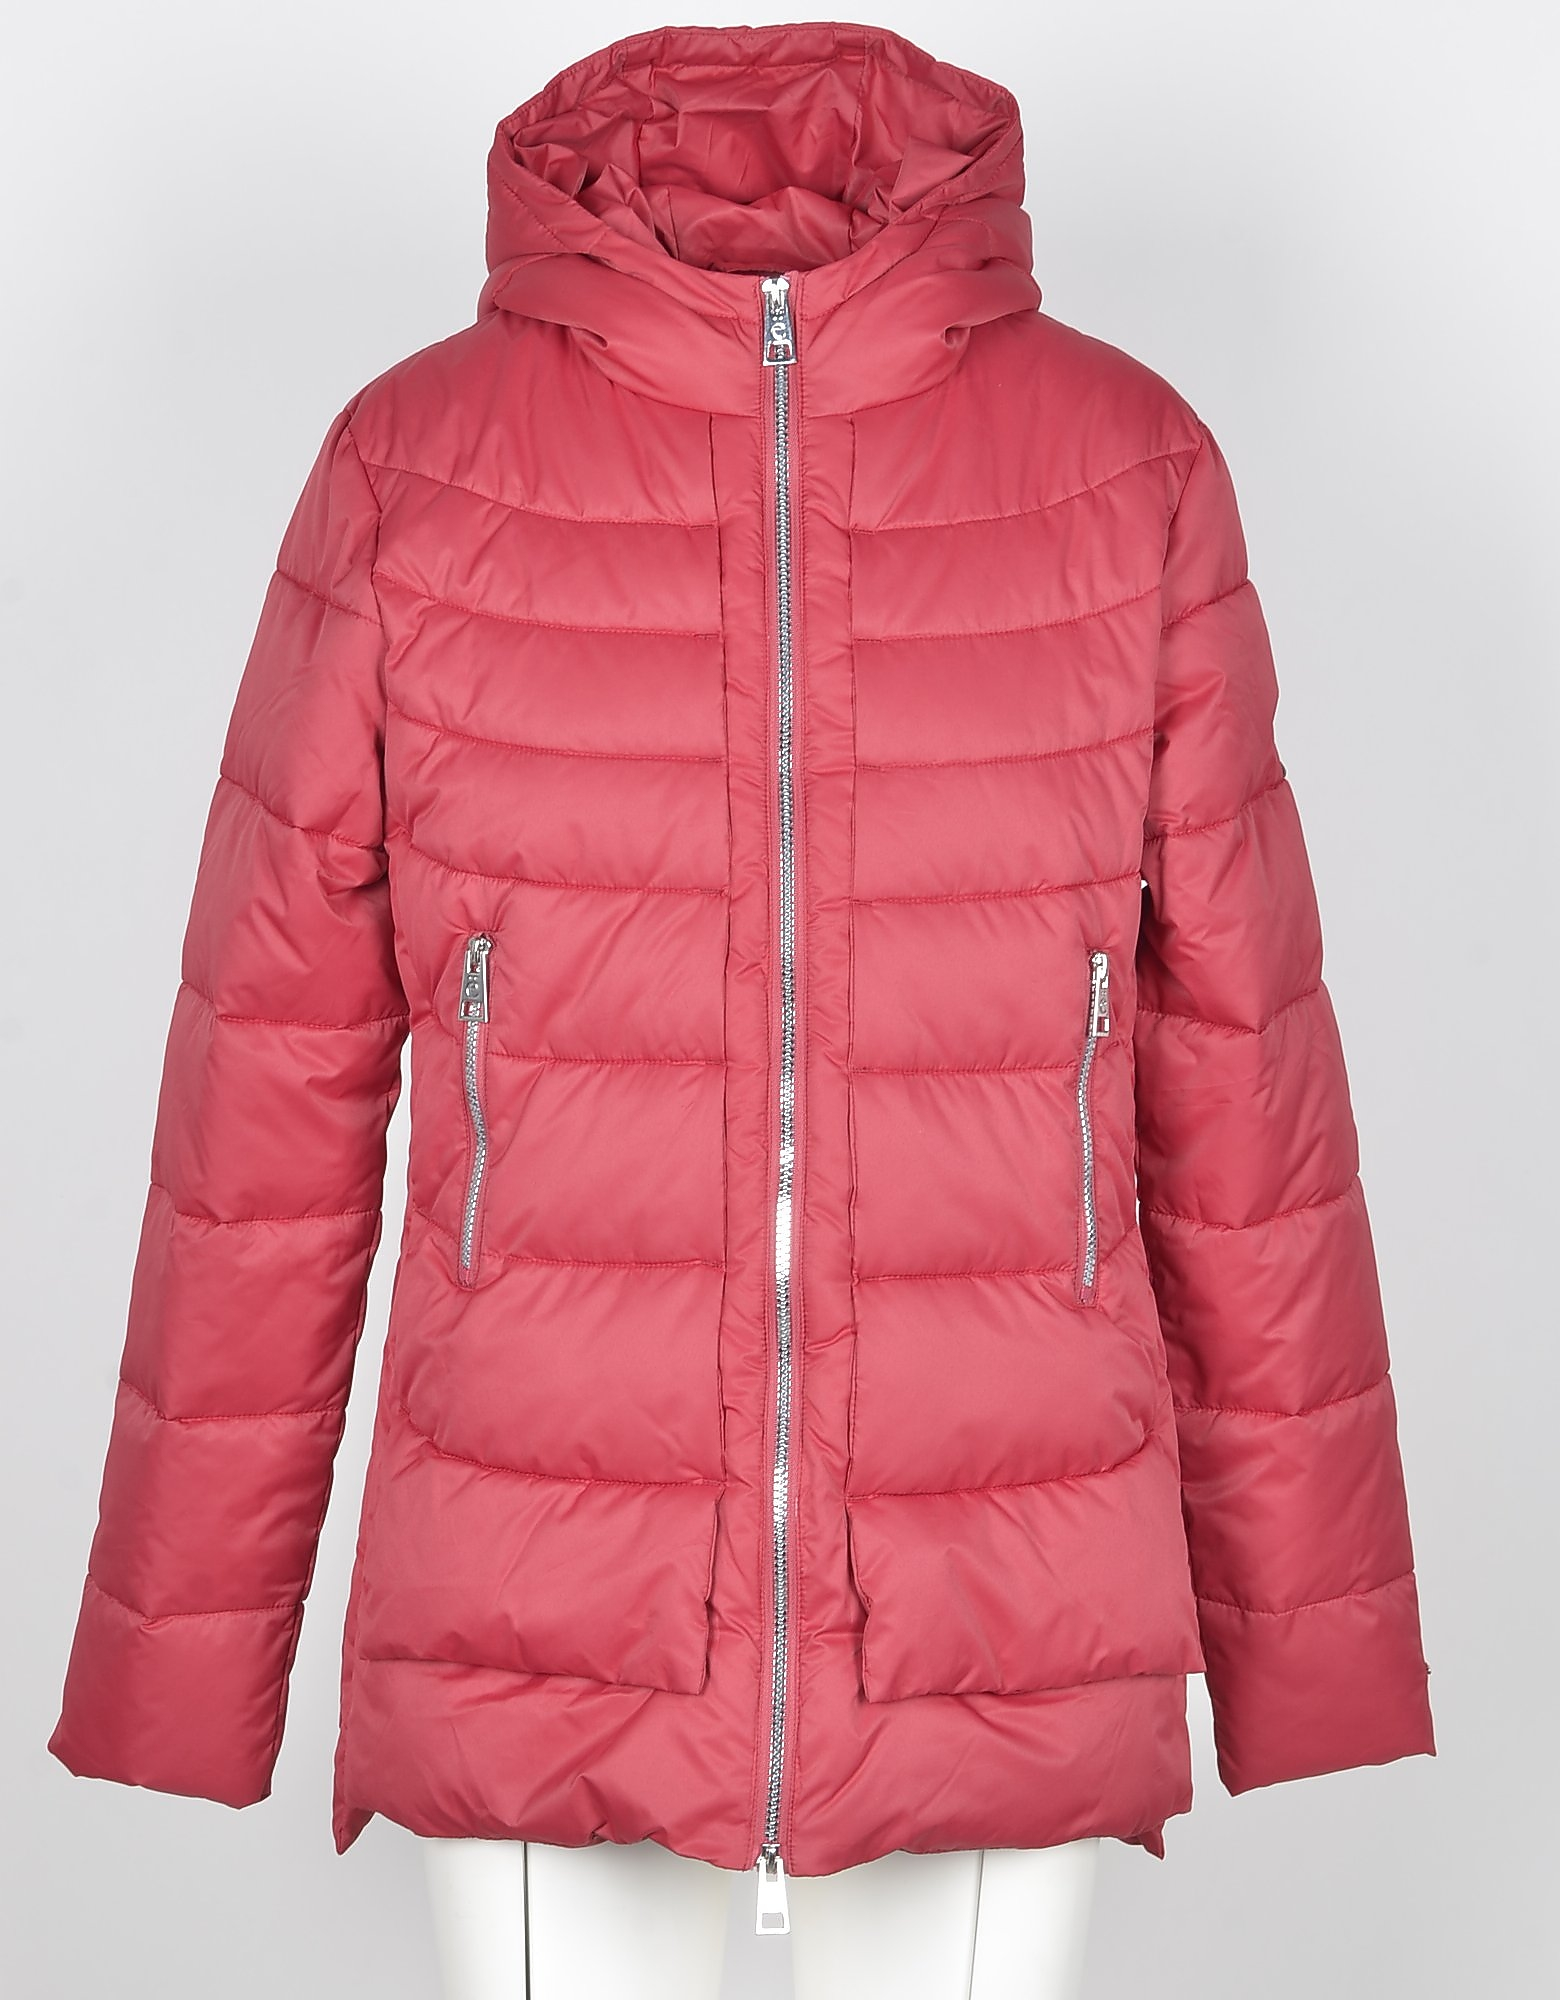 GAELLE PARIS Designer Coats & Jackets, Women's Red Padded Jacket